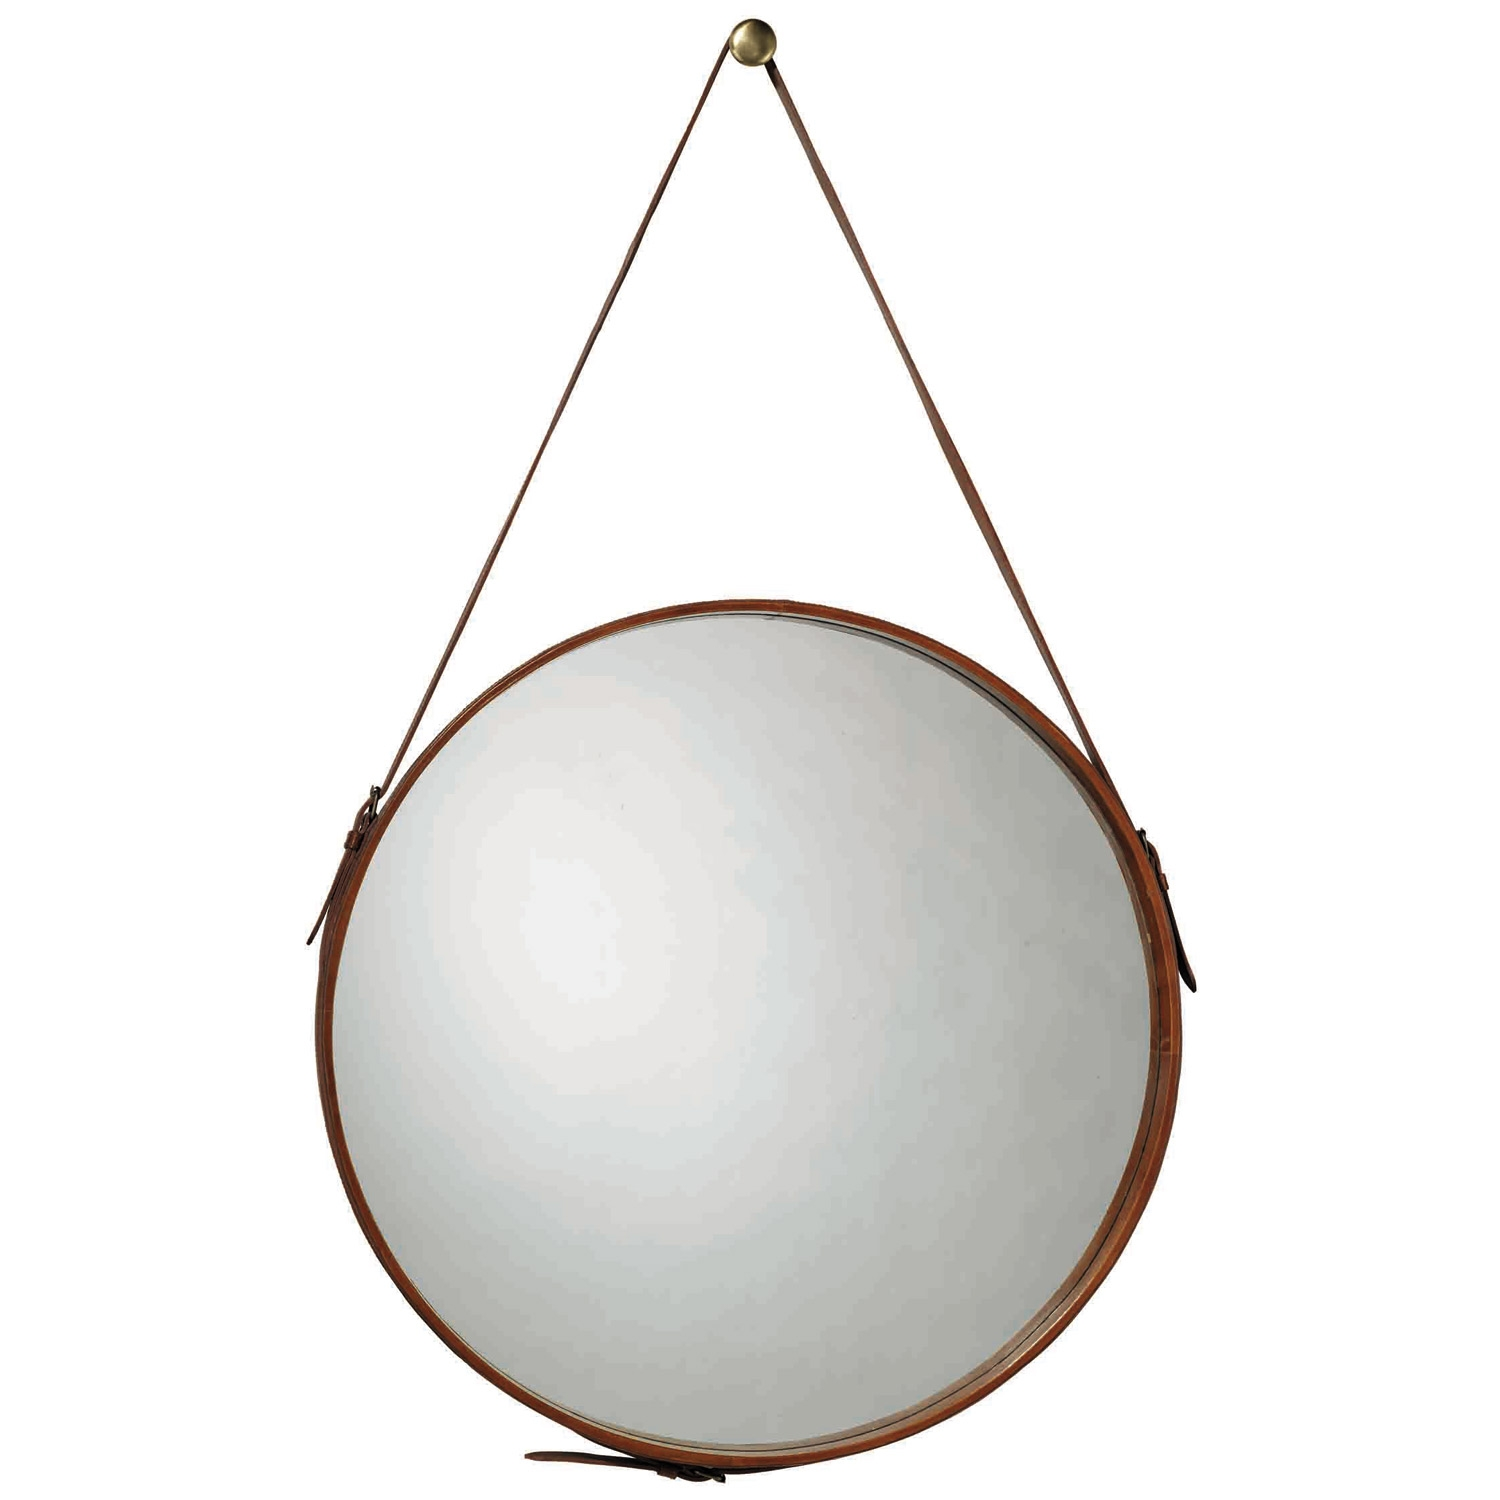 Jaime Young Leather Mirror Courtney Out Loud Regarding Leather Round Mirror (Image 6 of 15)